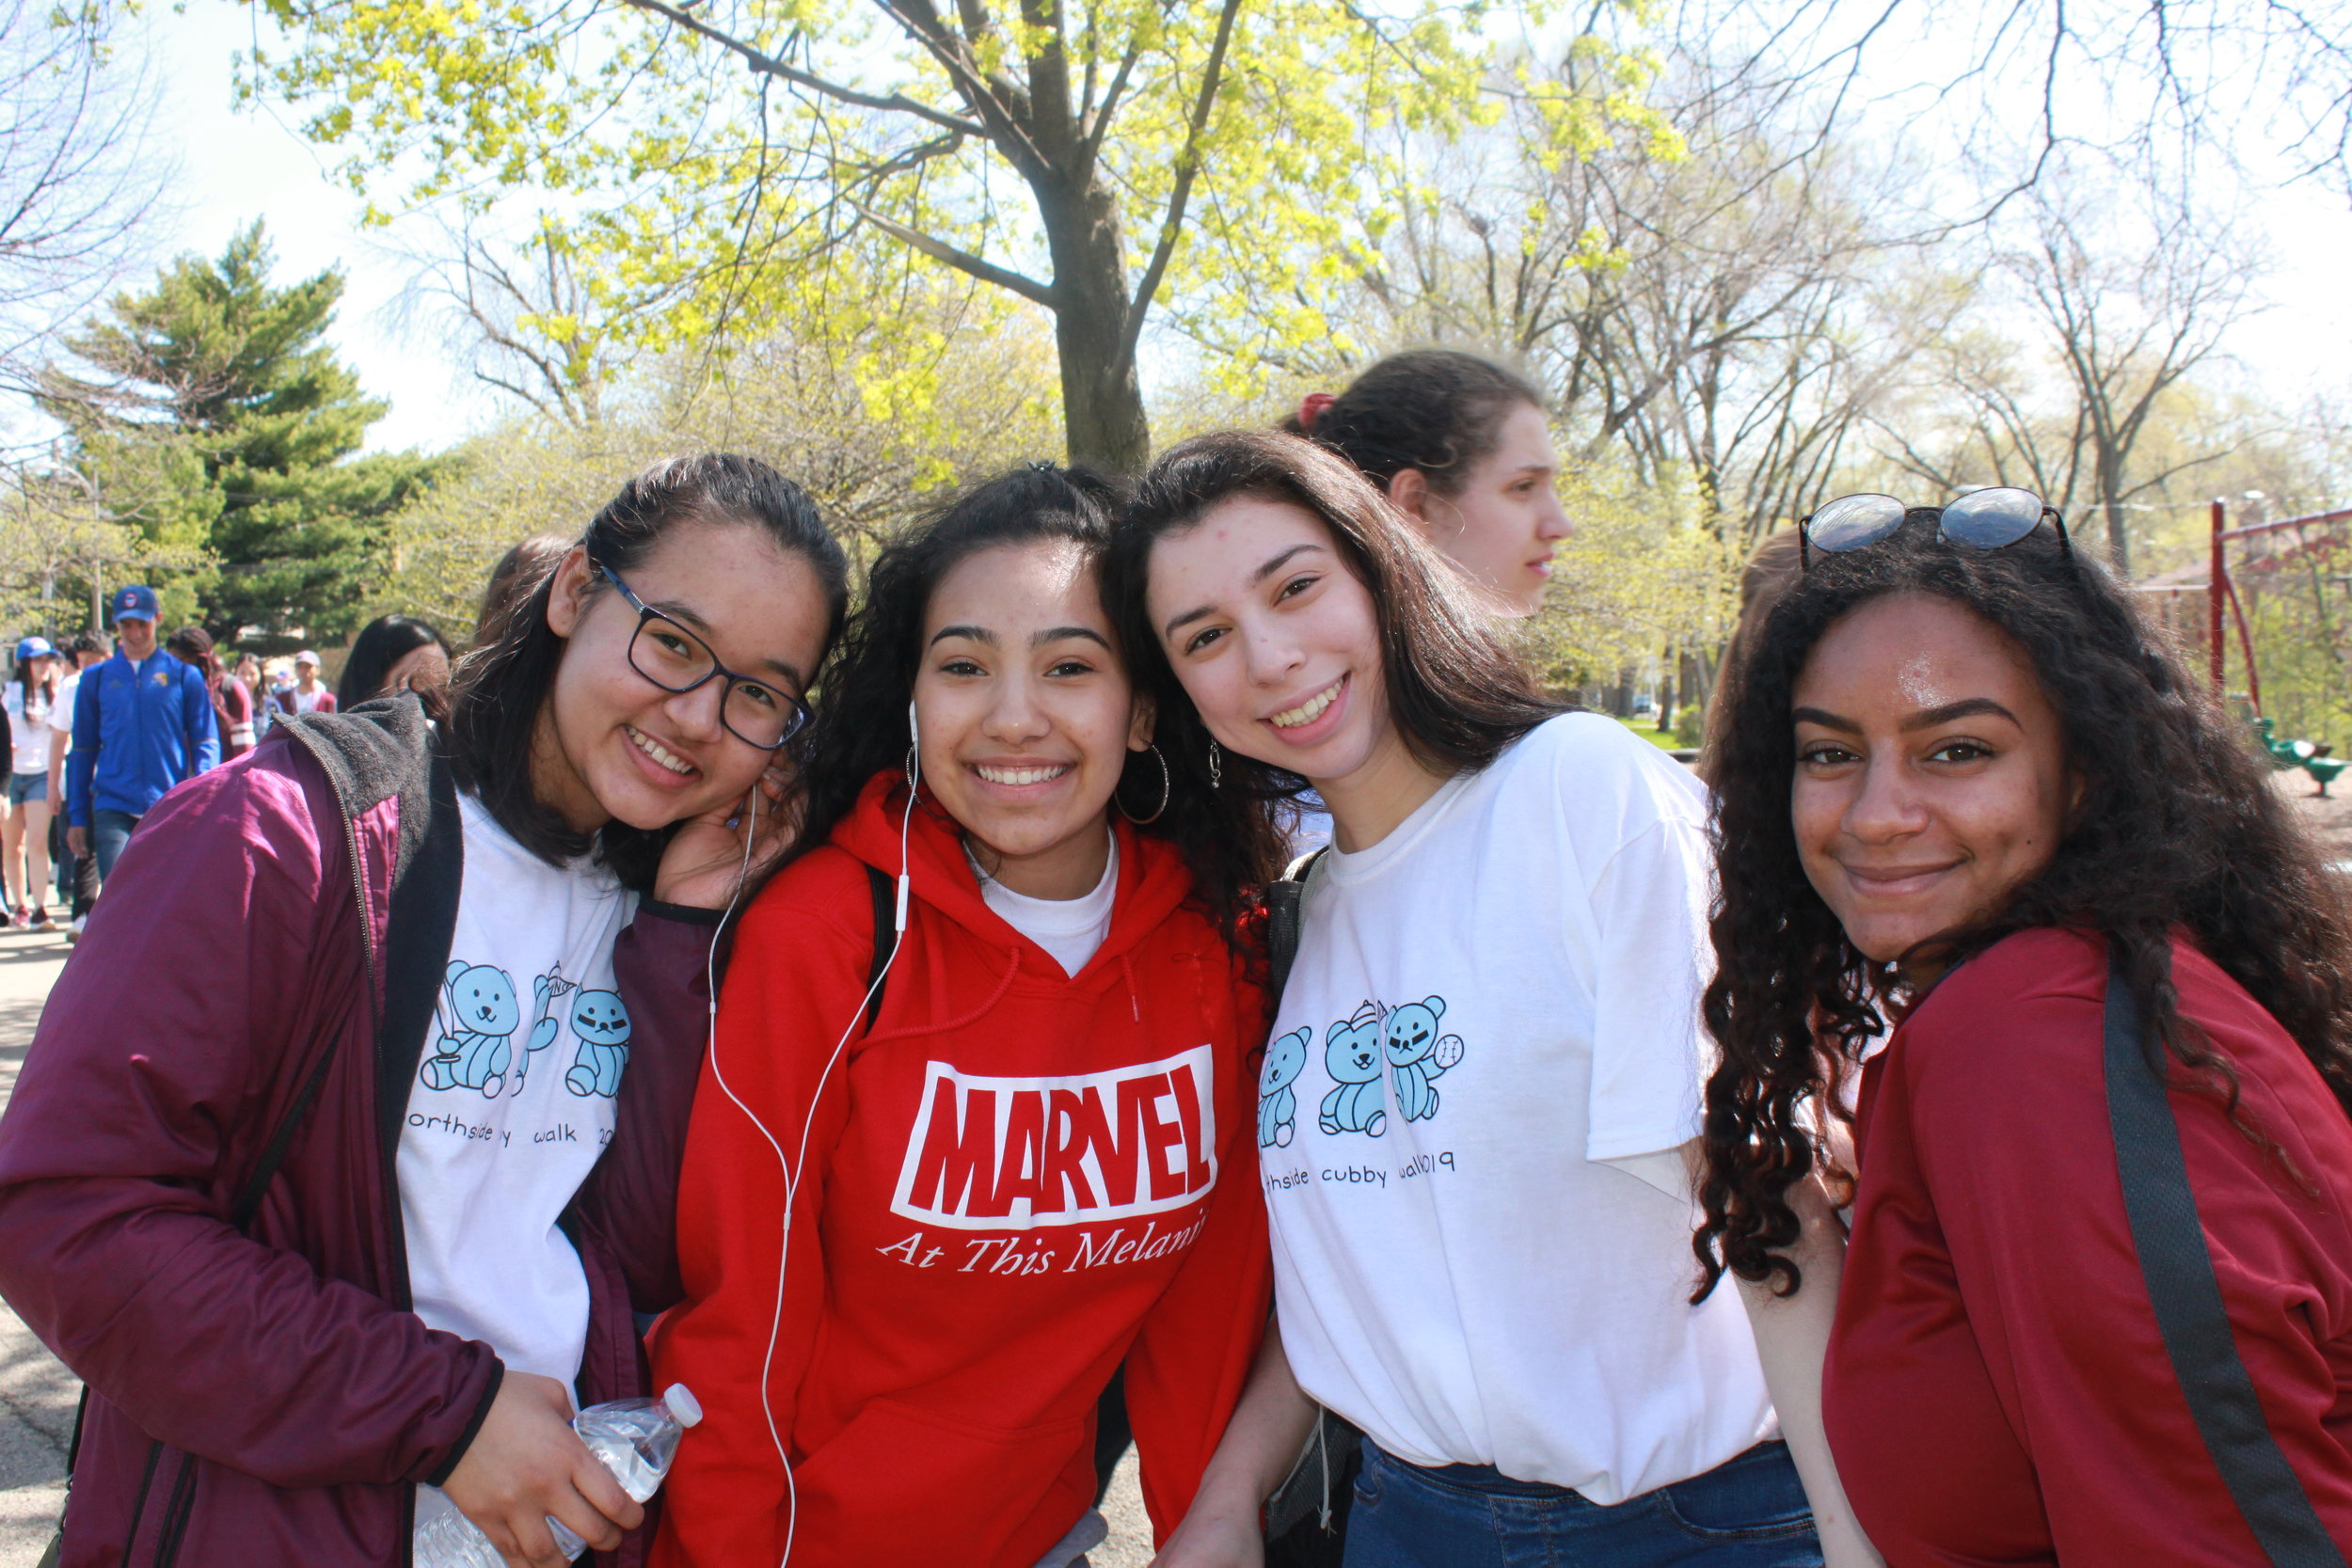 Sophomores smile at the beginning of the walk